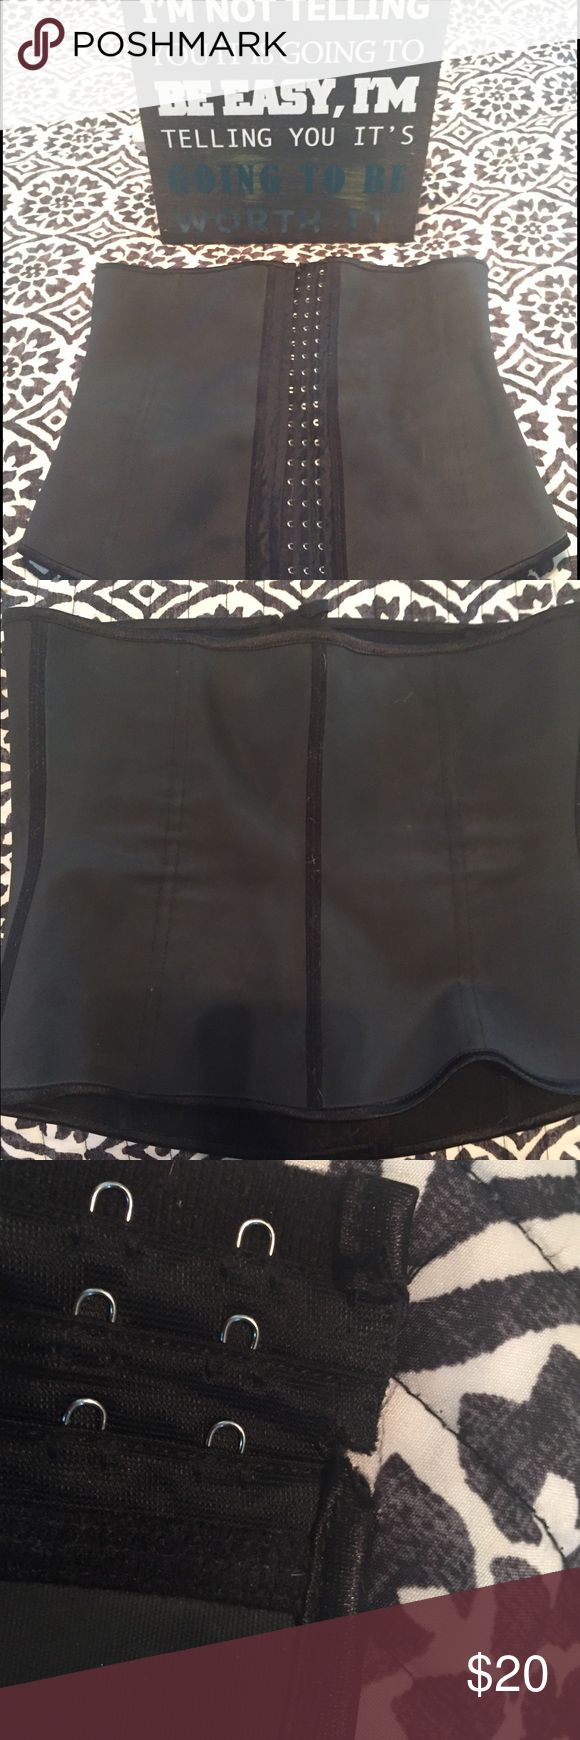 Hourglass Waist Trainer This is a hourglass Waist Trainer. It is has been gently used. You always want to buy a Waist Trainer that is 2 sizes too big, so if you wear a medium, then the XL would be perfect. There is a pull on one side, I have included in the pictures. It does not effect the ability of the waist trainer though. Other